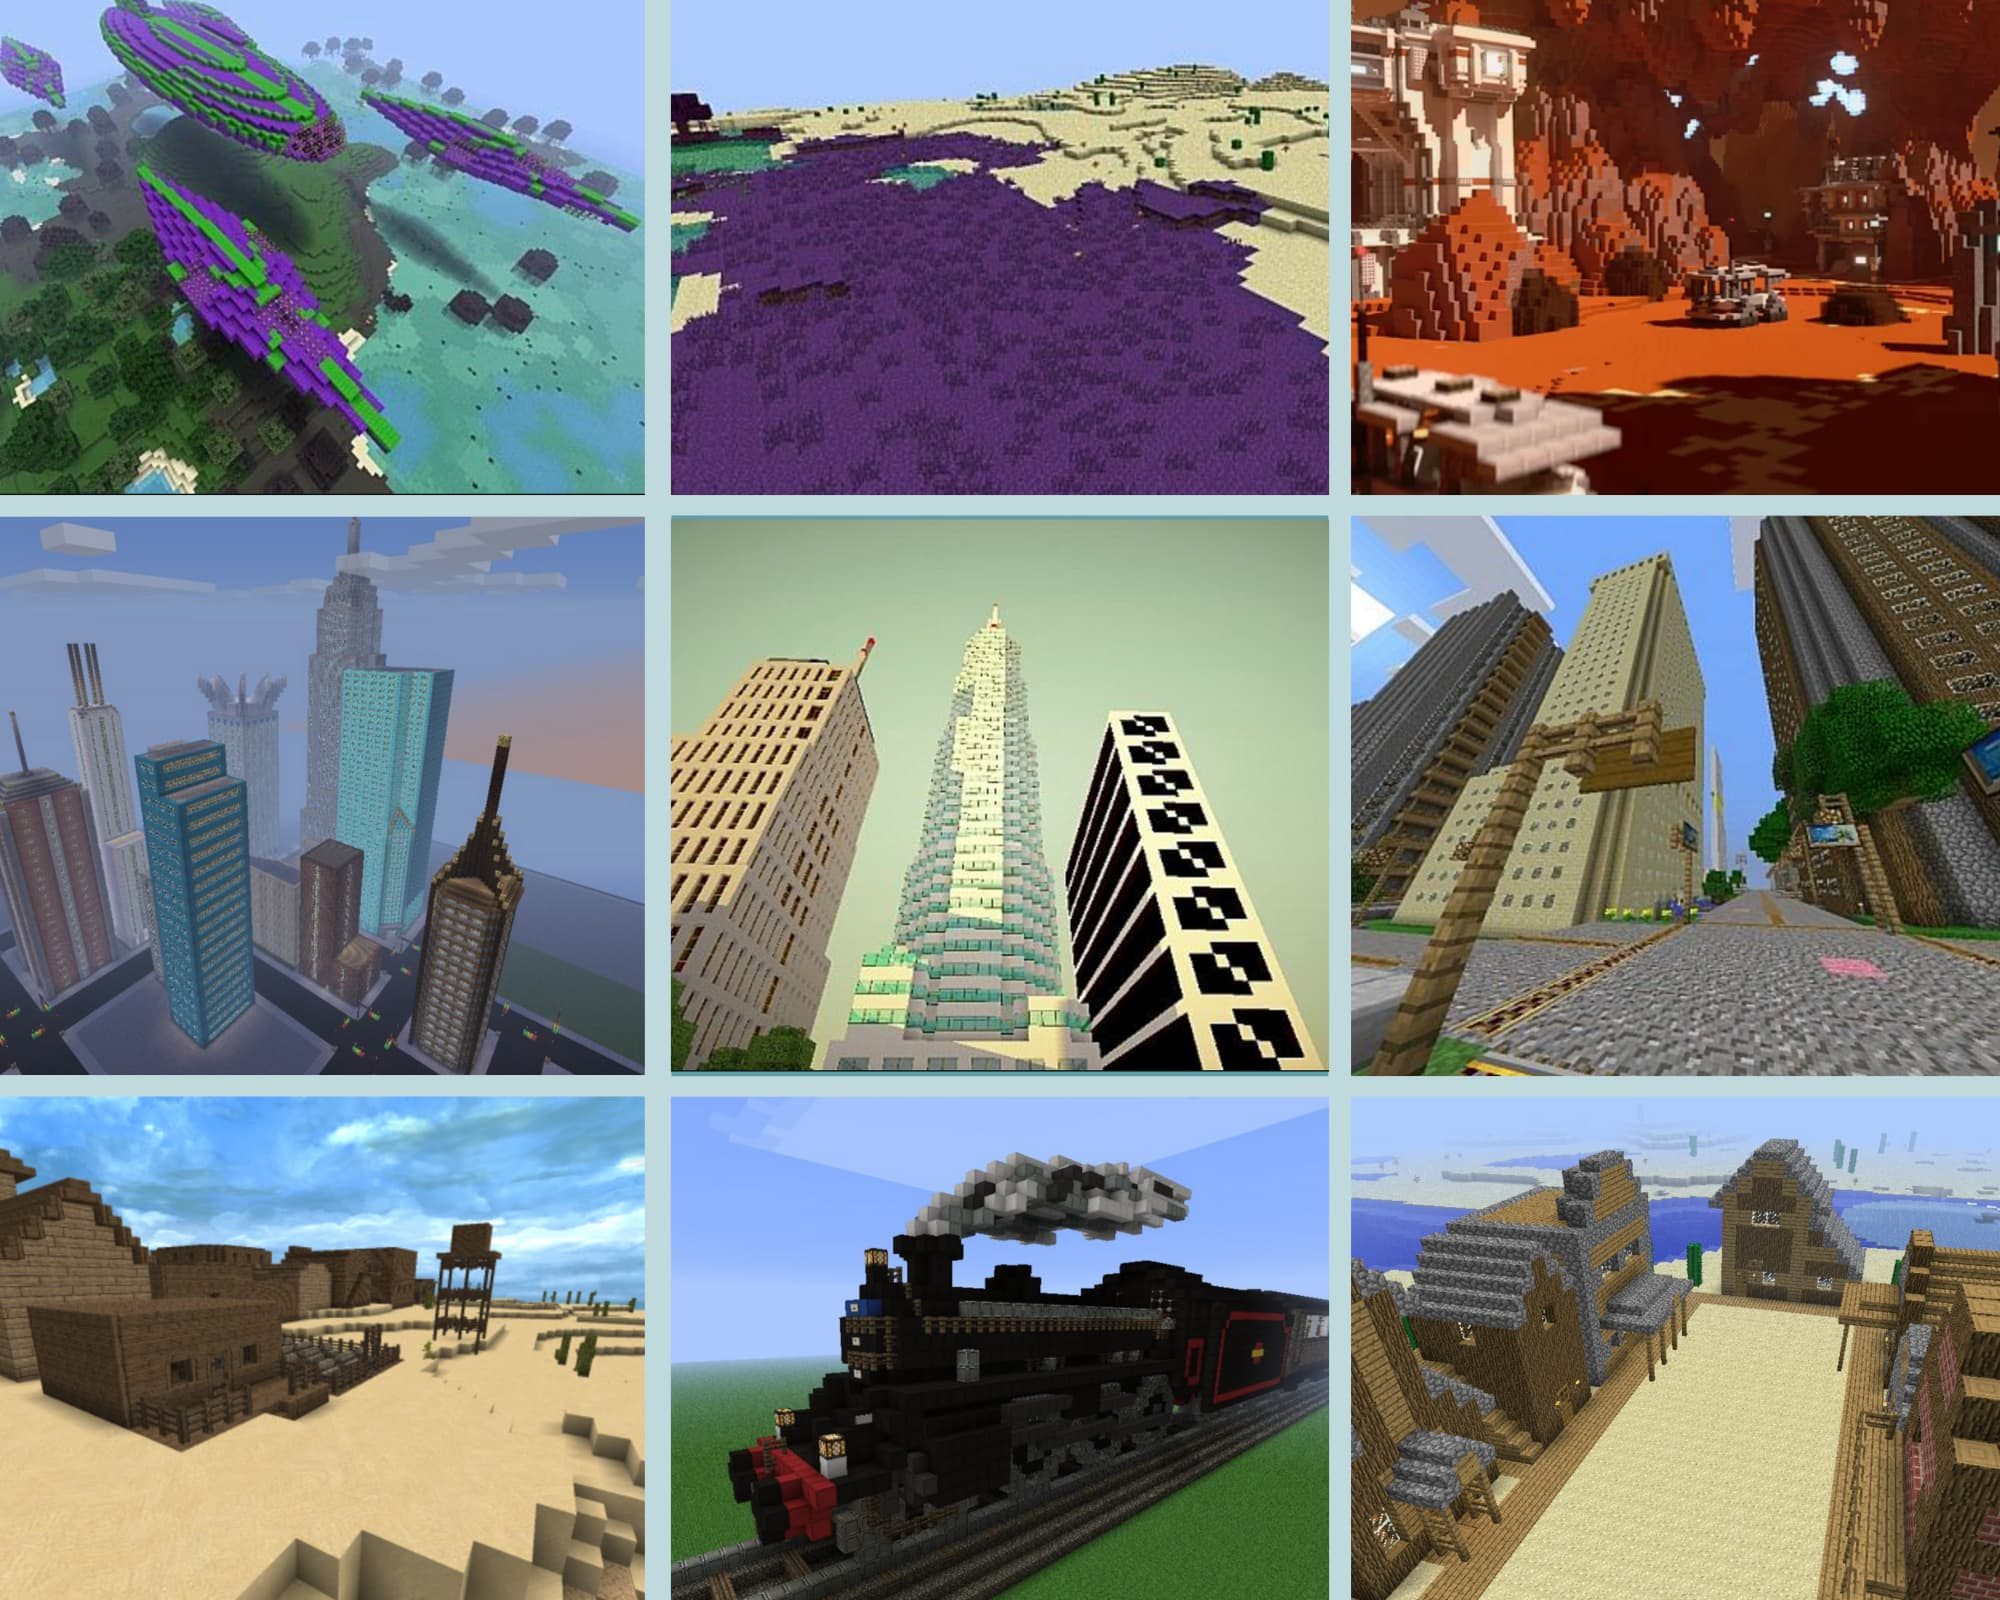 Join other Minecraft builders to construct amazing creations! Kids will collaborate while building together and creating community build projects.